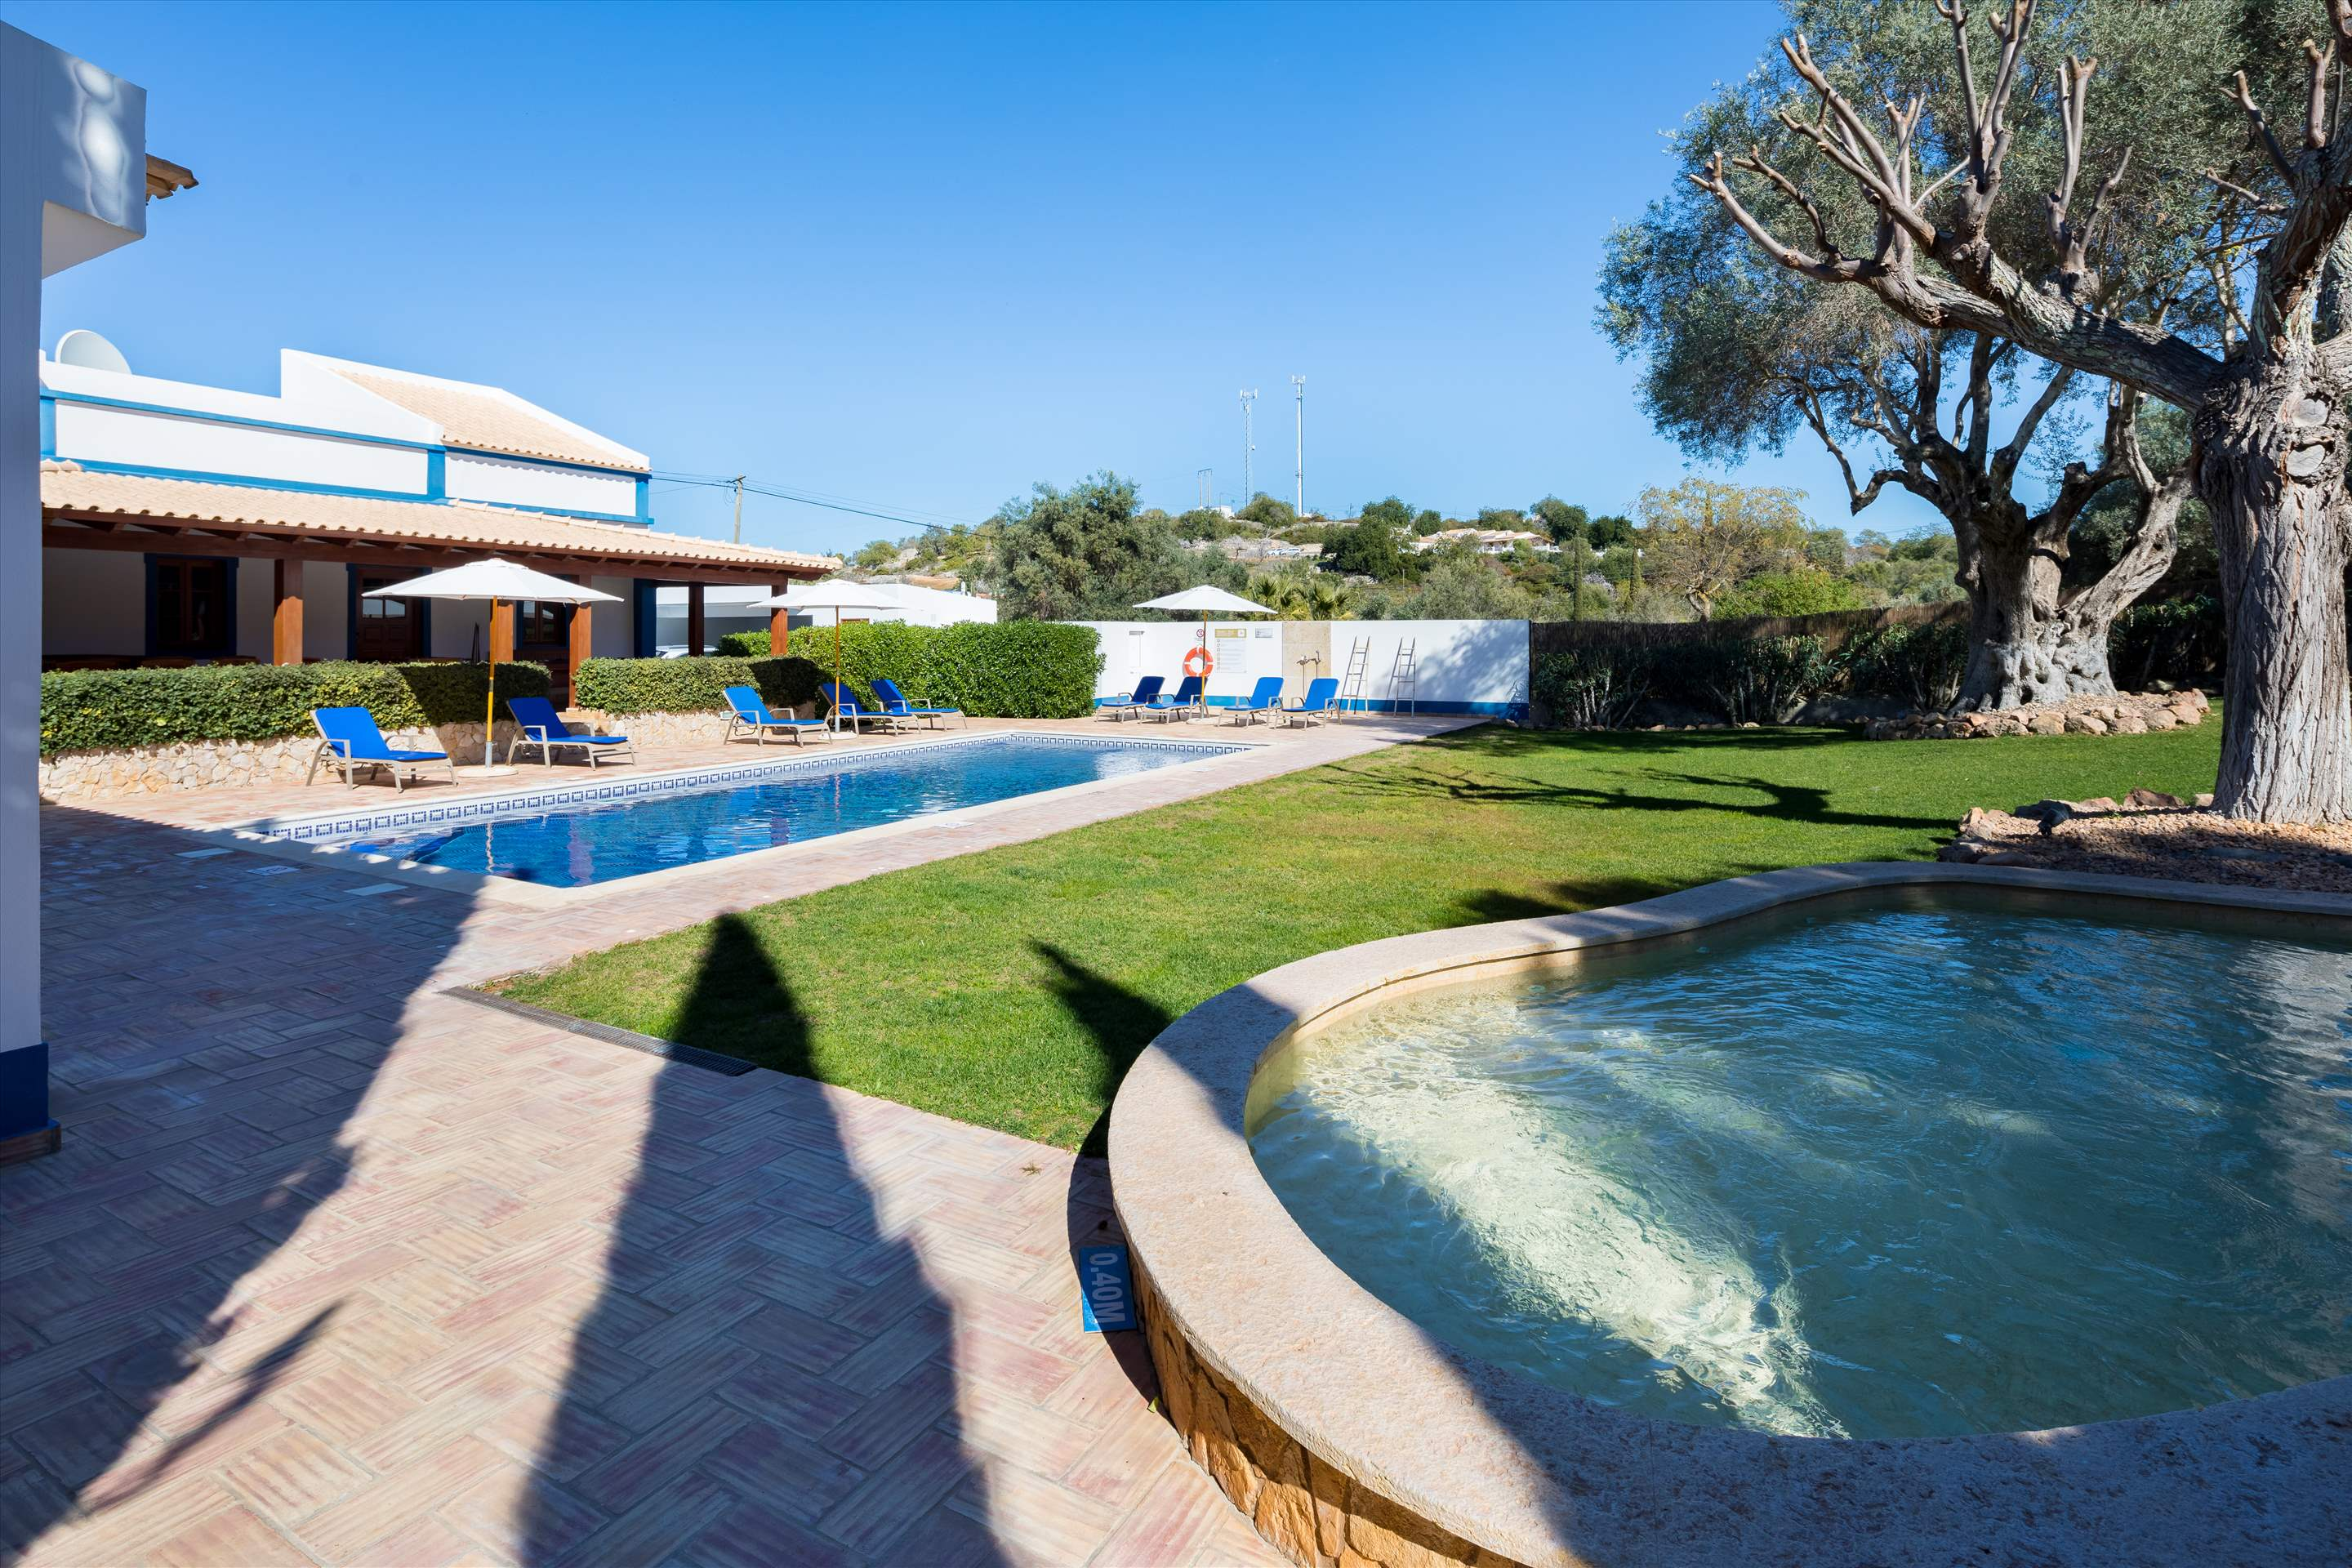 Casa do Ingles, 7-10 persons, 4 bedroom villa in Vilamoura Area, Algarve Photo #2